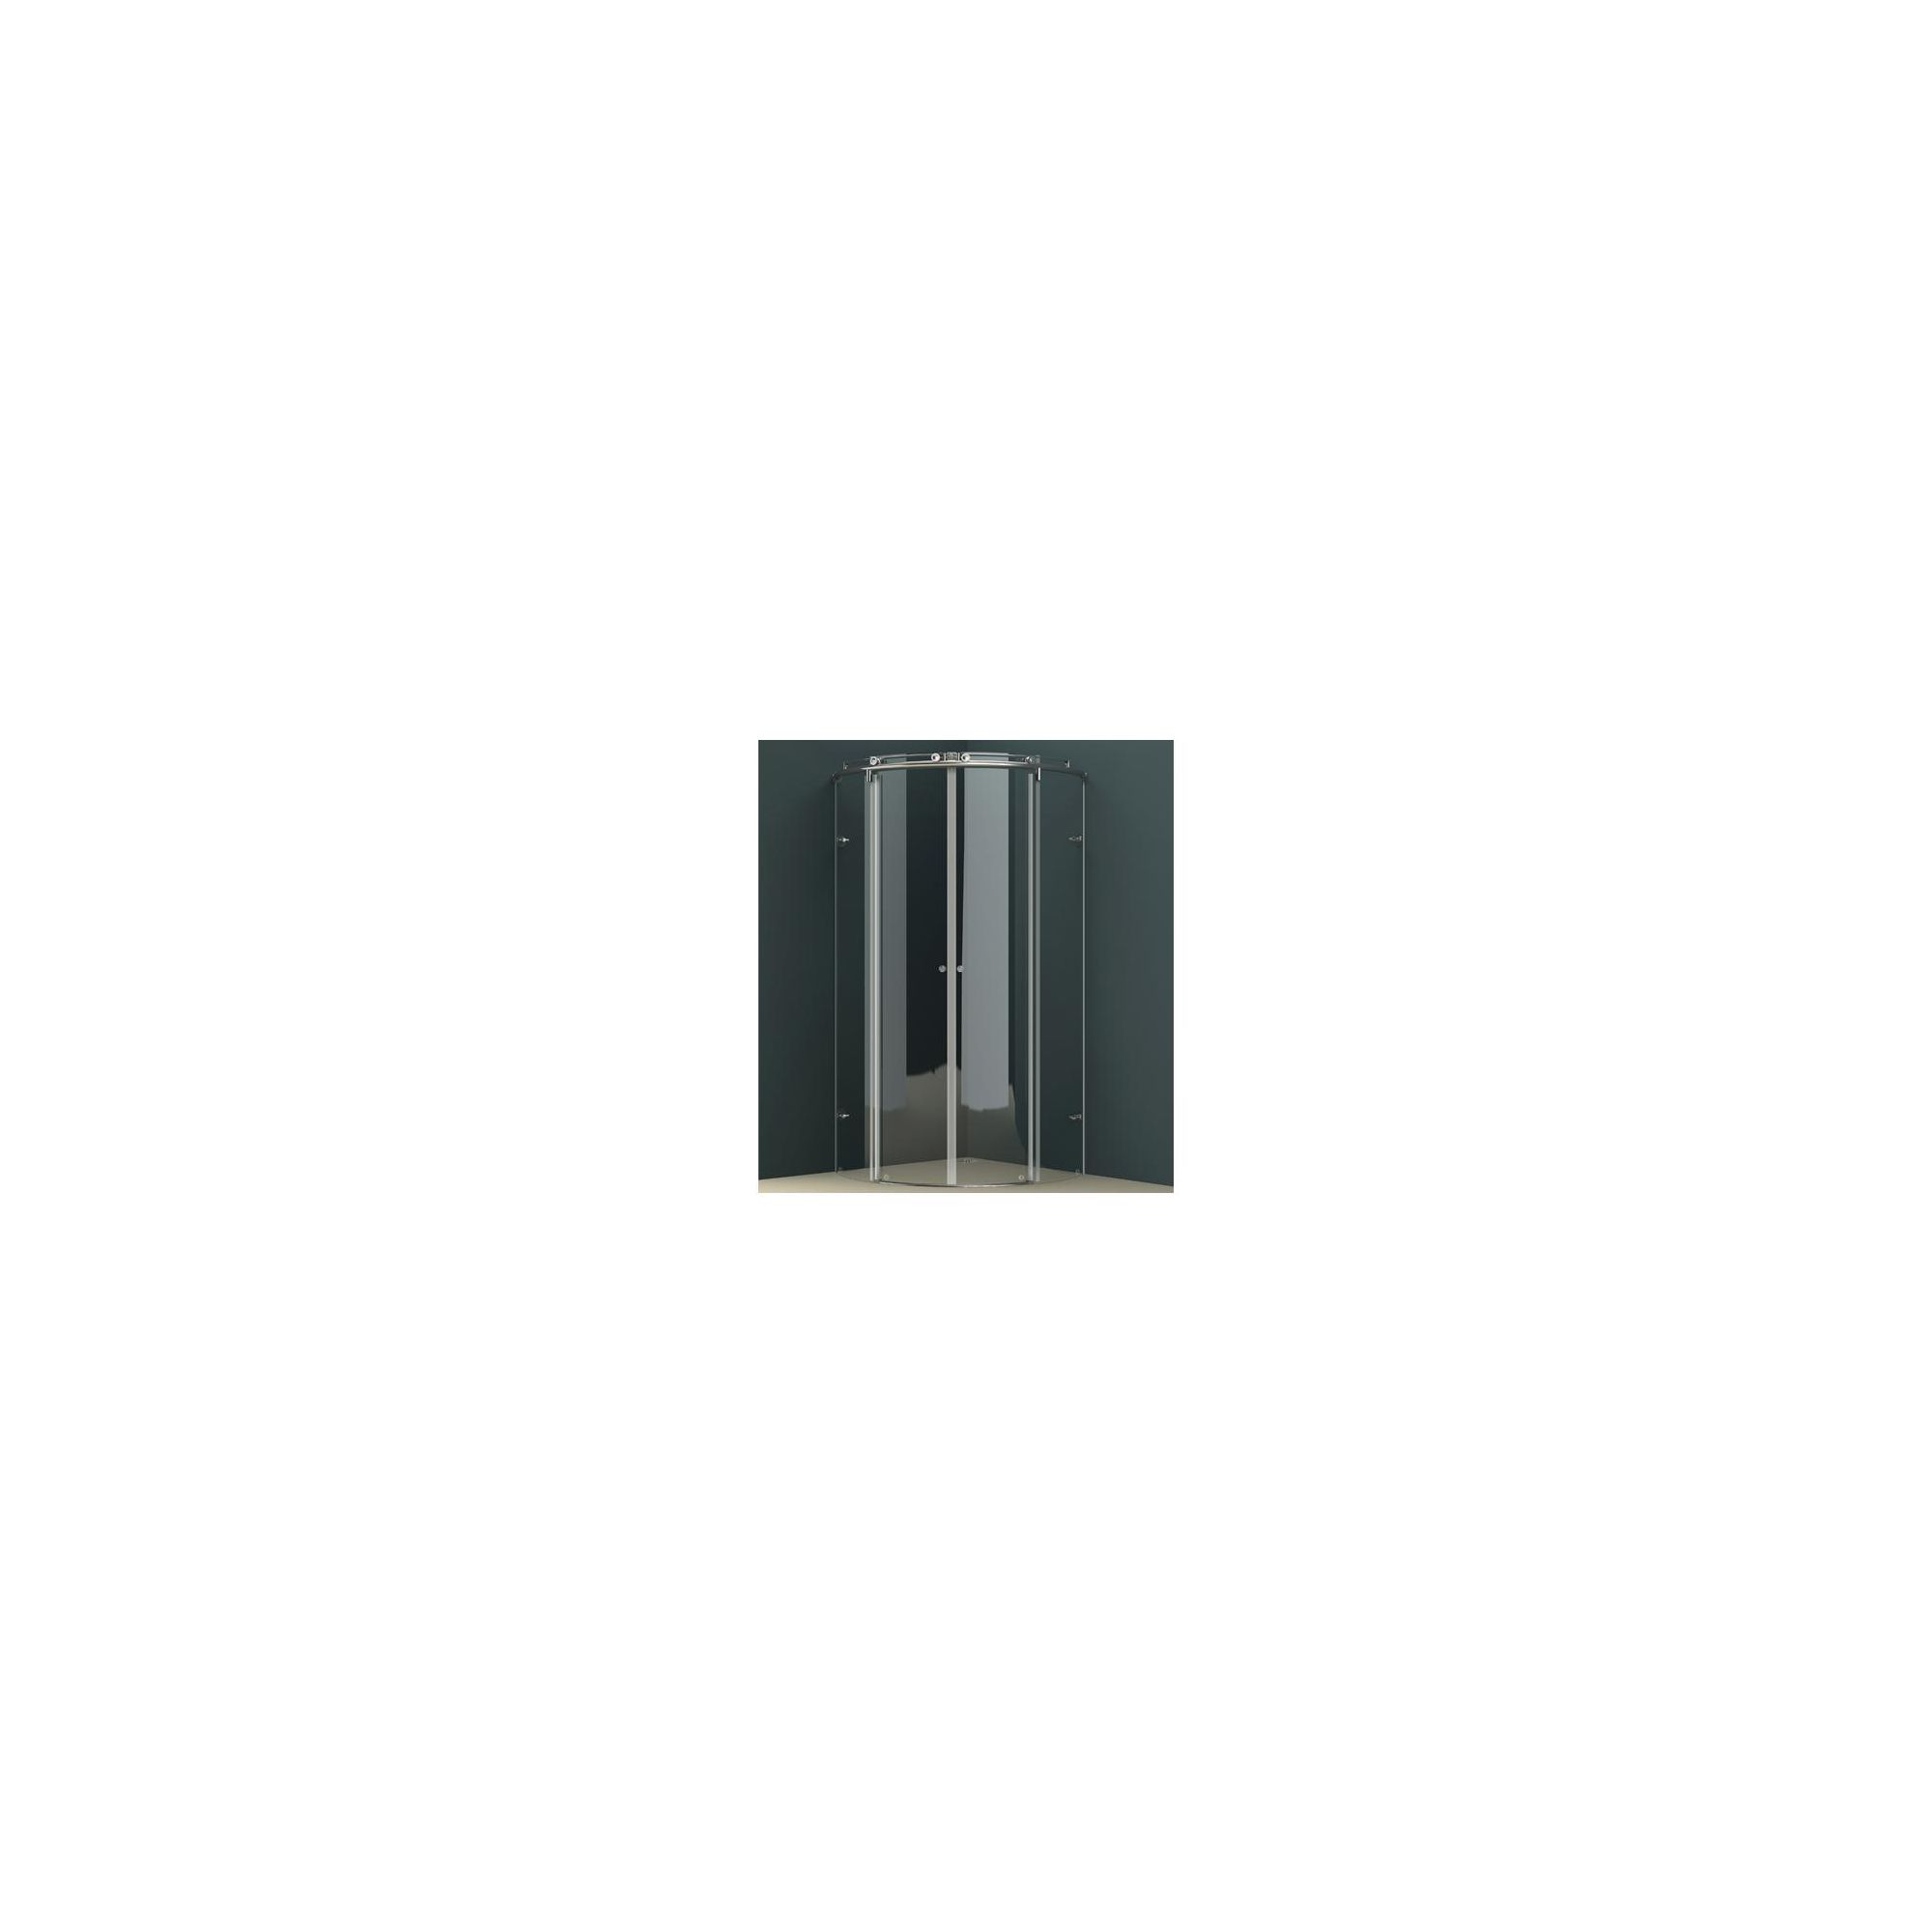 Vessini K Series Quadrant Wet Room Shower Door, 1000mm x 1000mm, excluding Tray, 10mm Glass at Tesco Direct